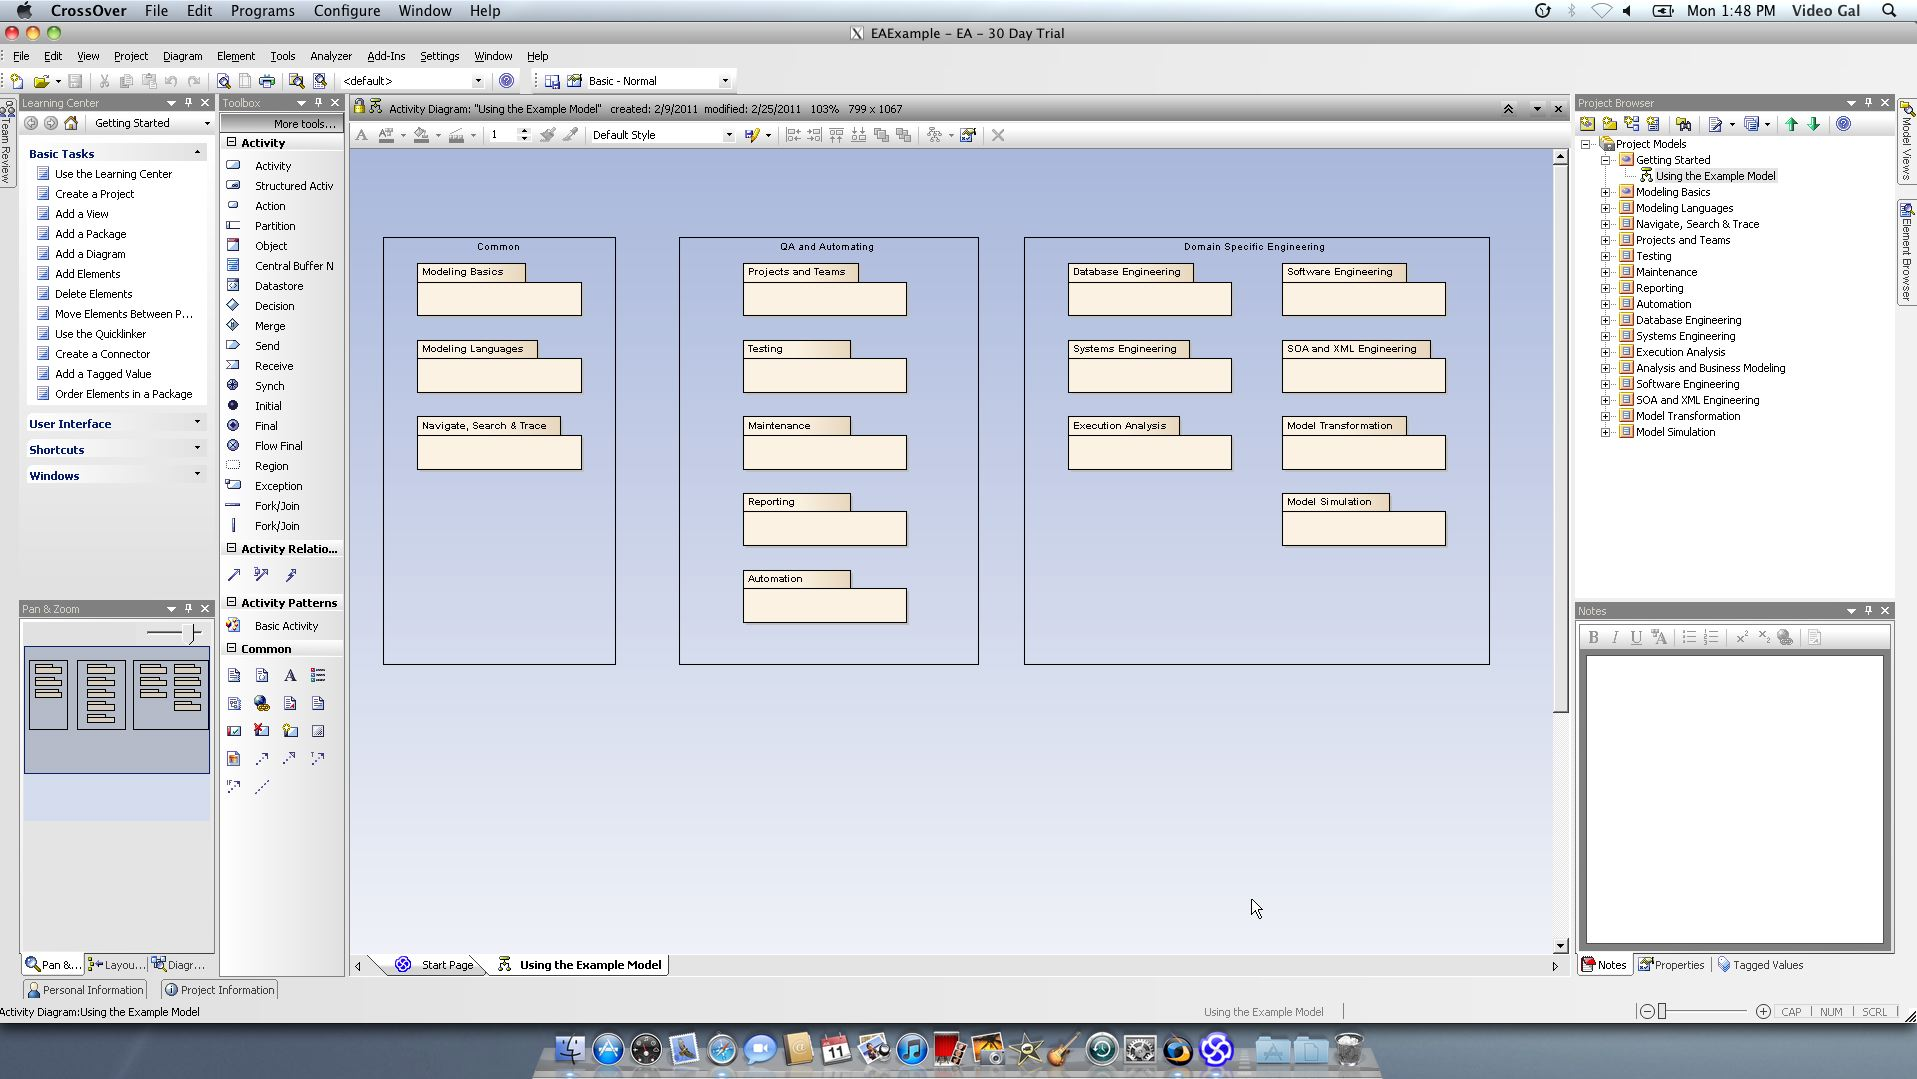 Enterprise Architect 9.0 on Mac with CrossOver 10.